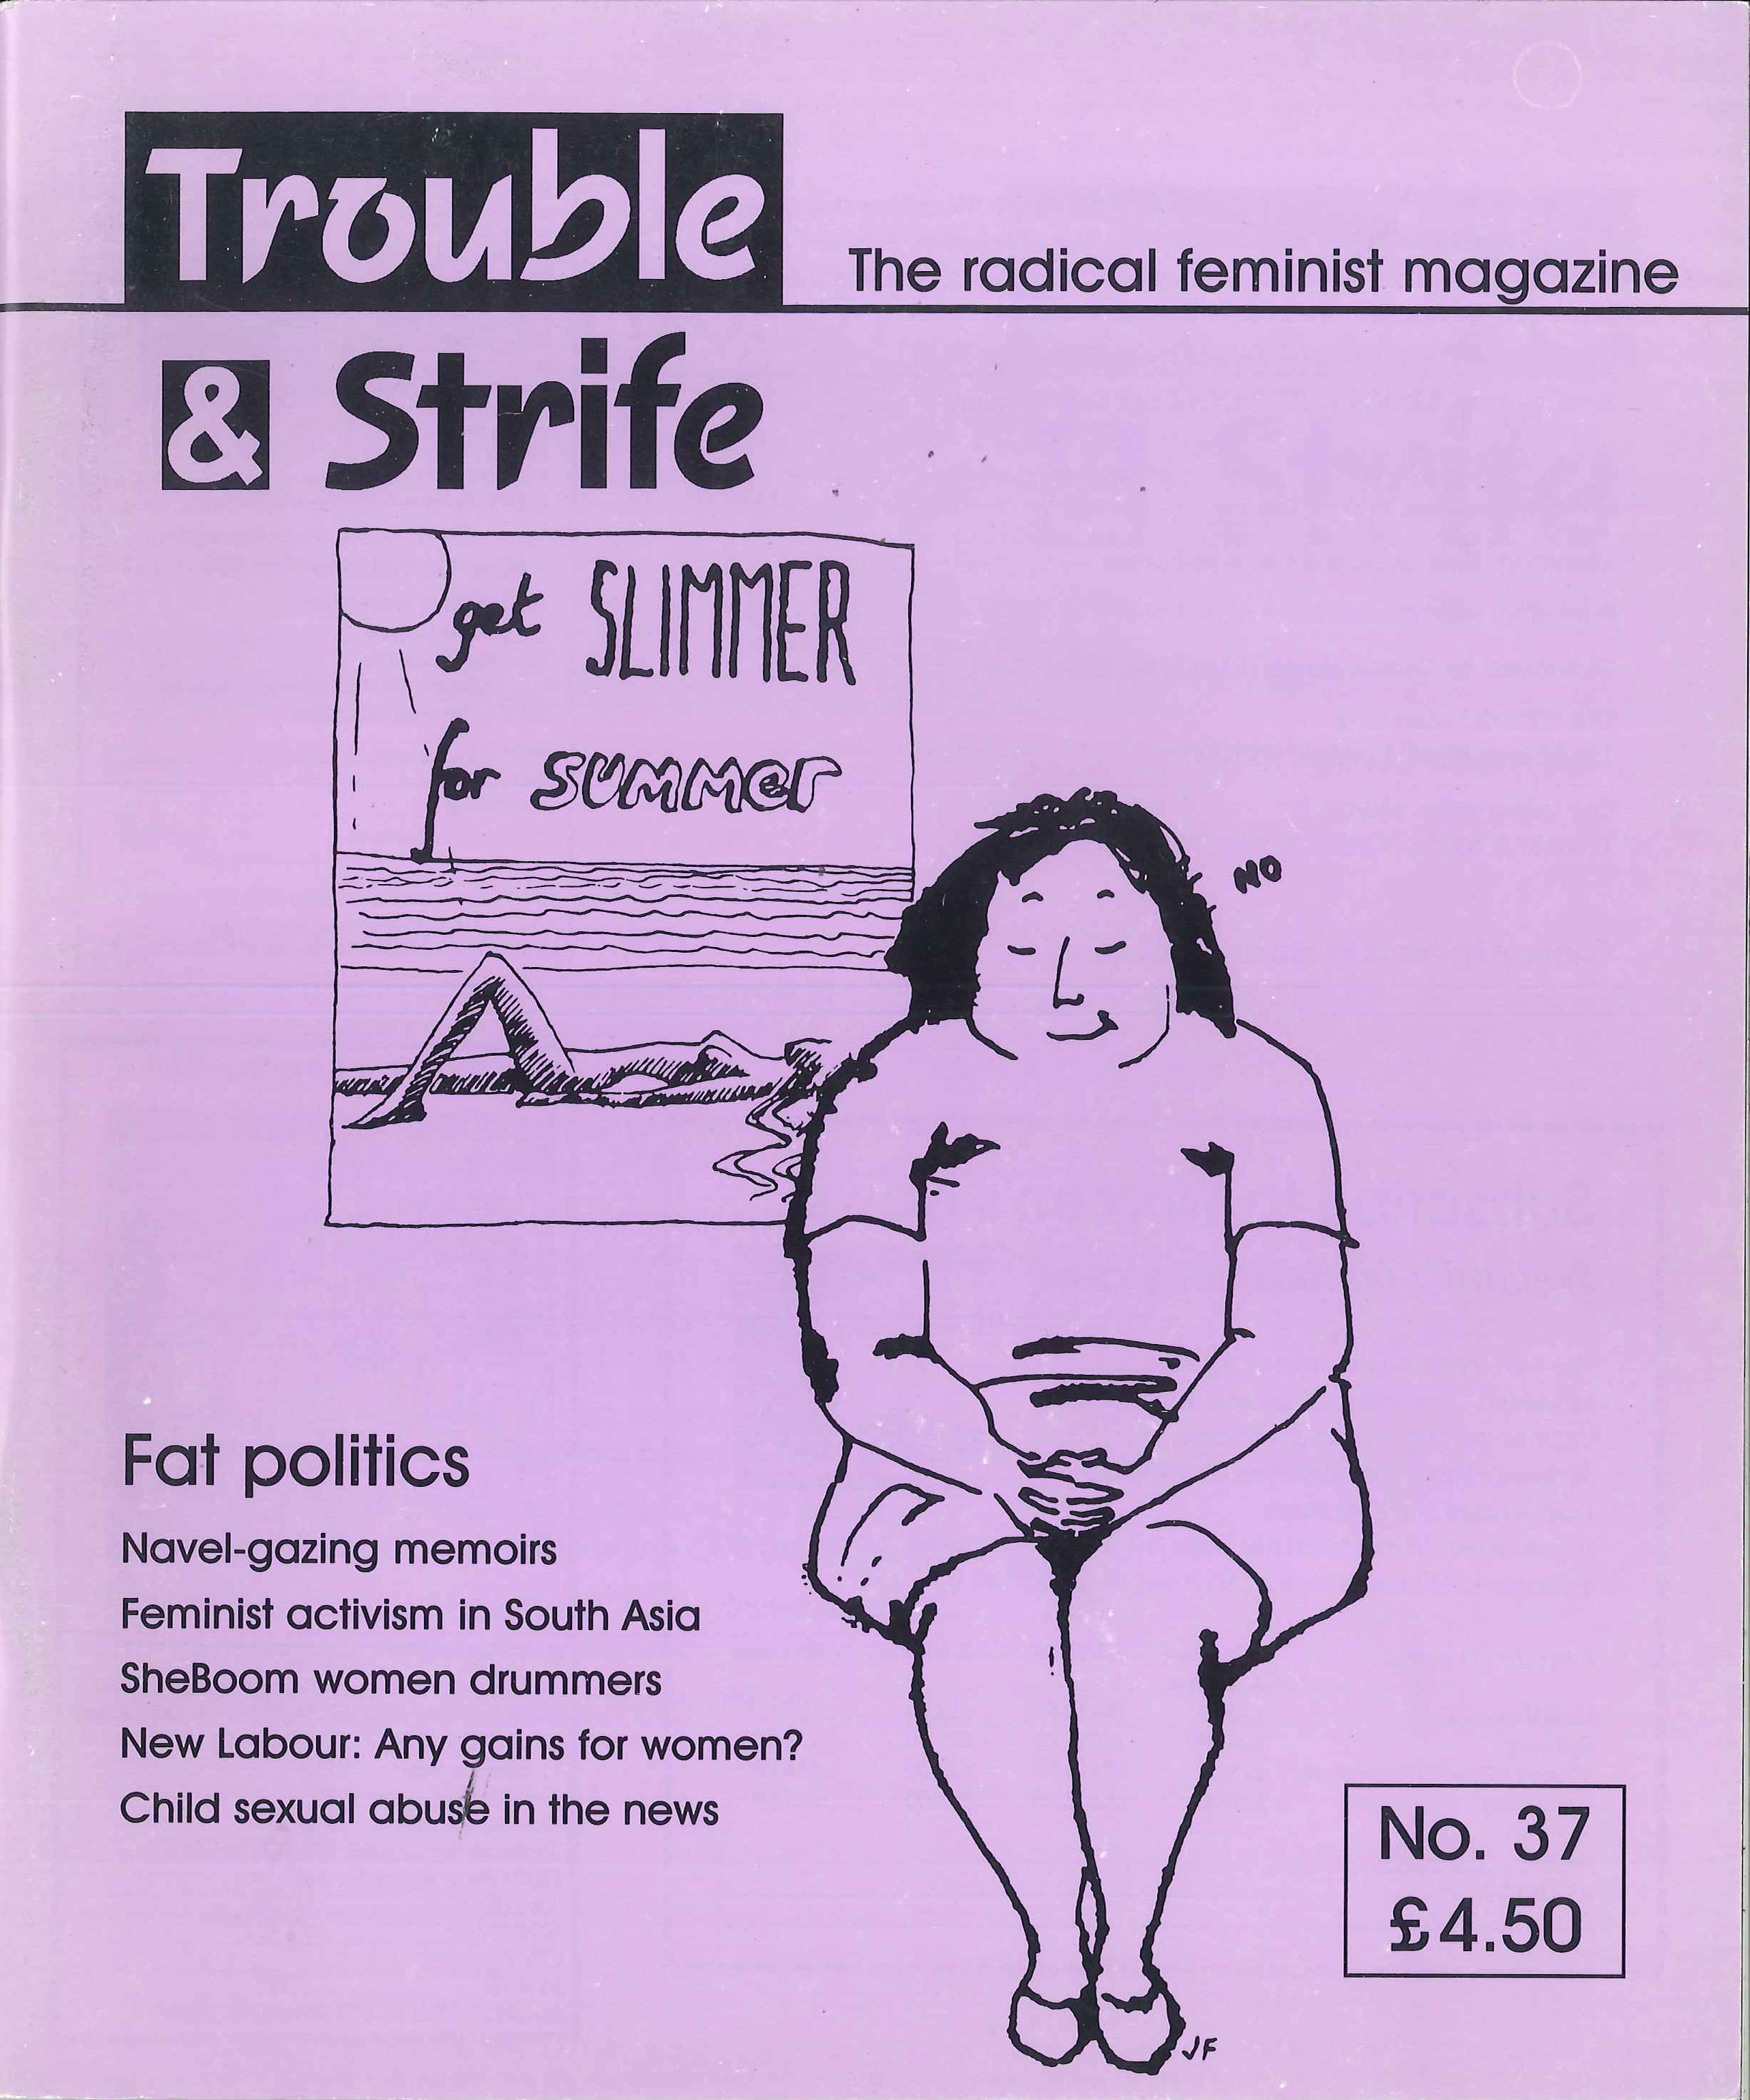 Scan of cover of issue 37